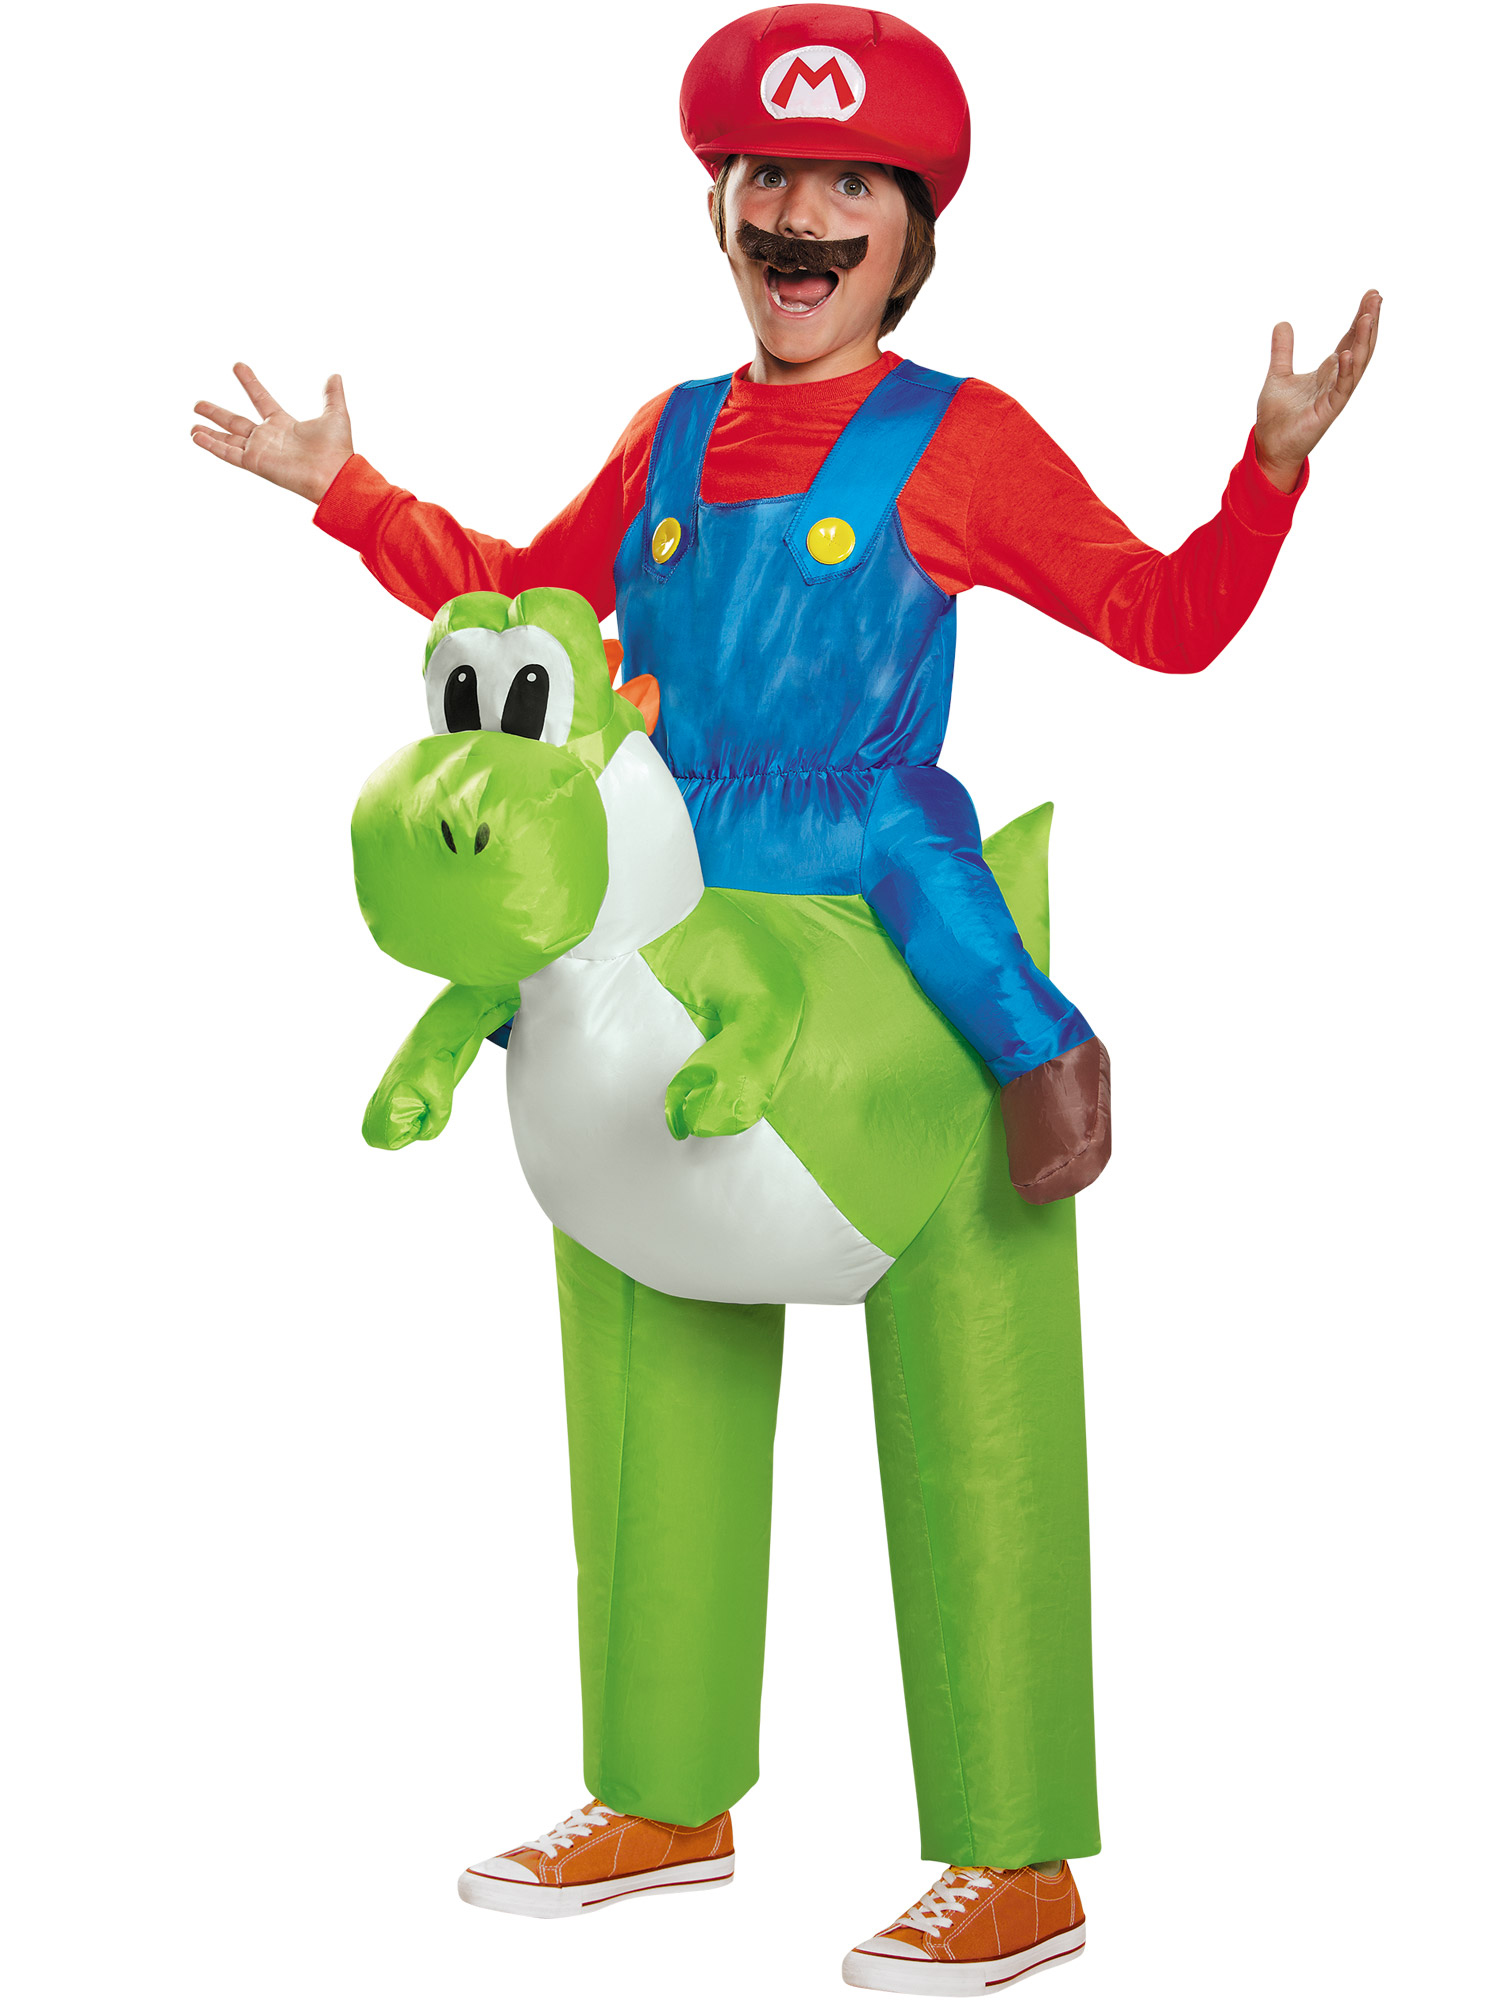 Super Mario Brothers Mario Riding Yoshi Inflatable Costume for Kids DI85150CH